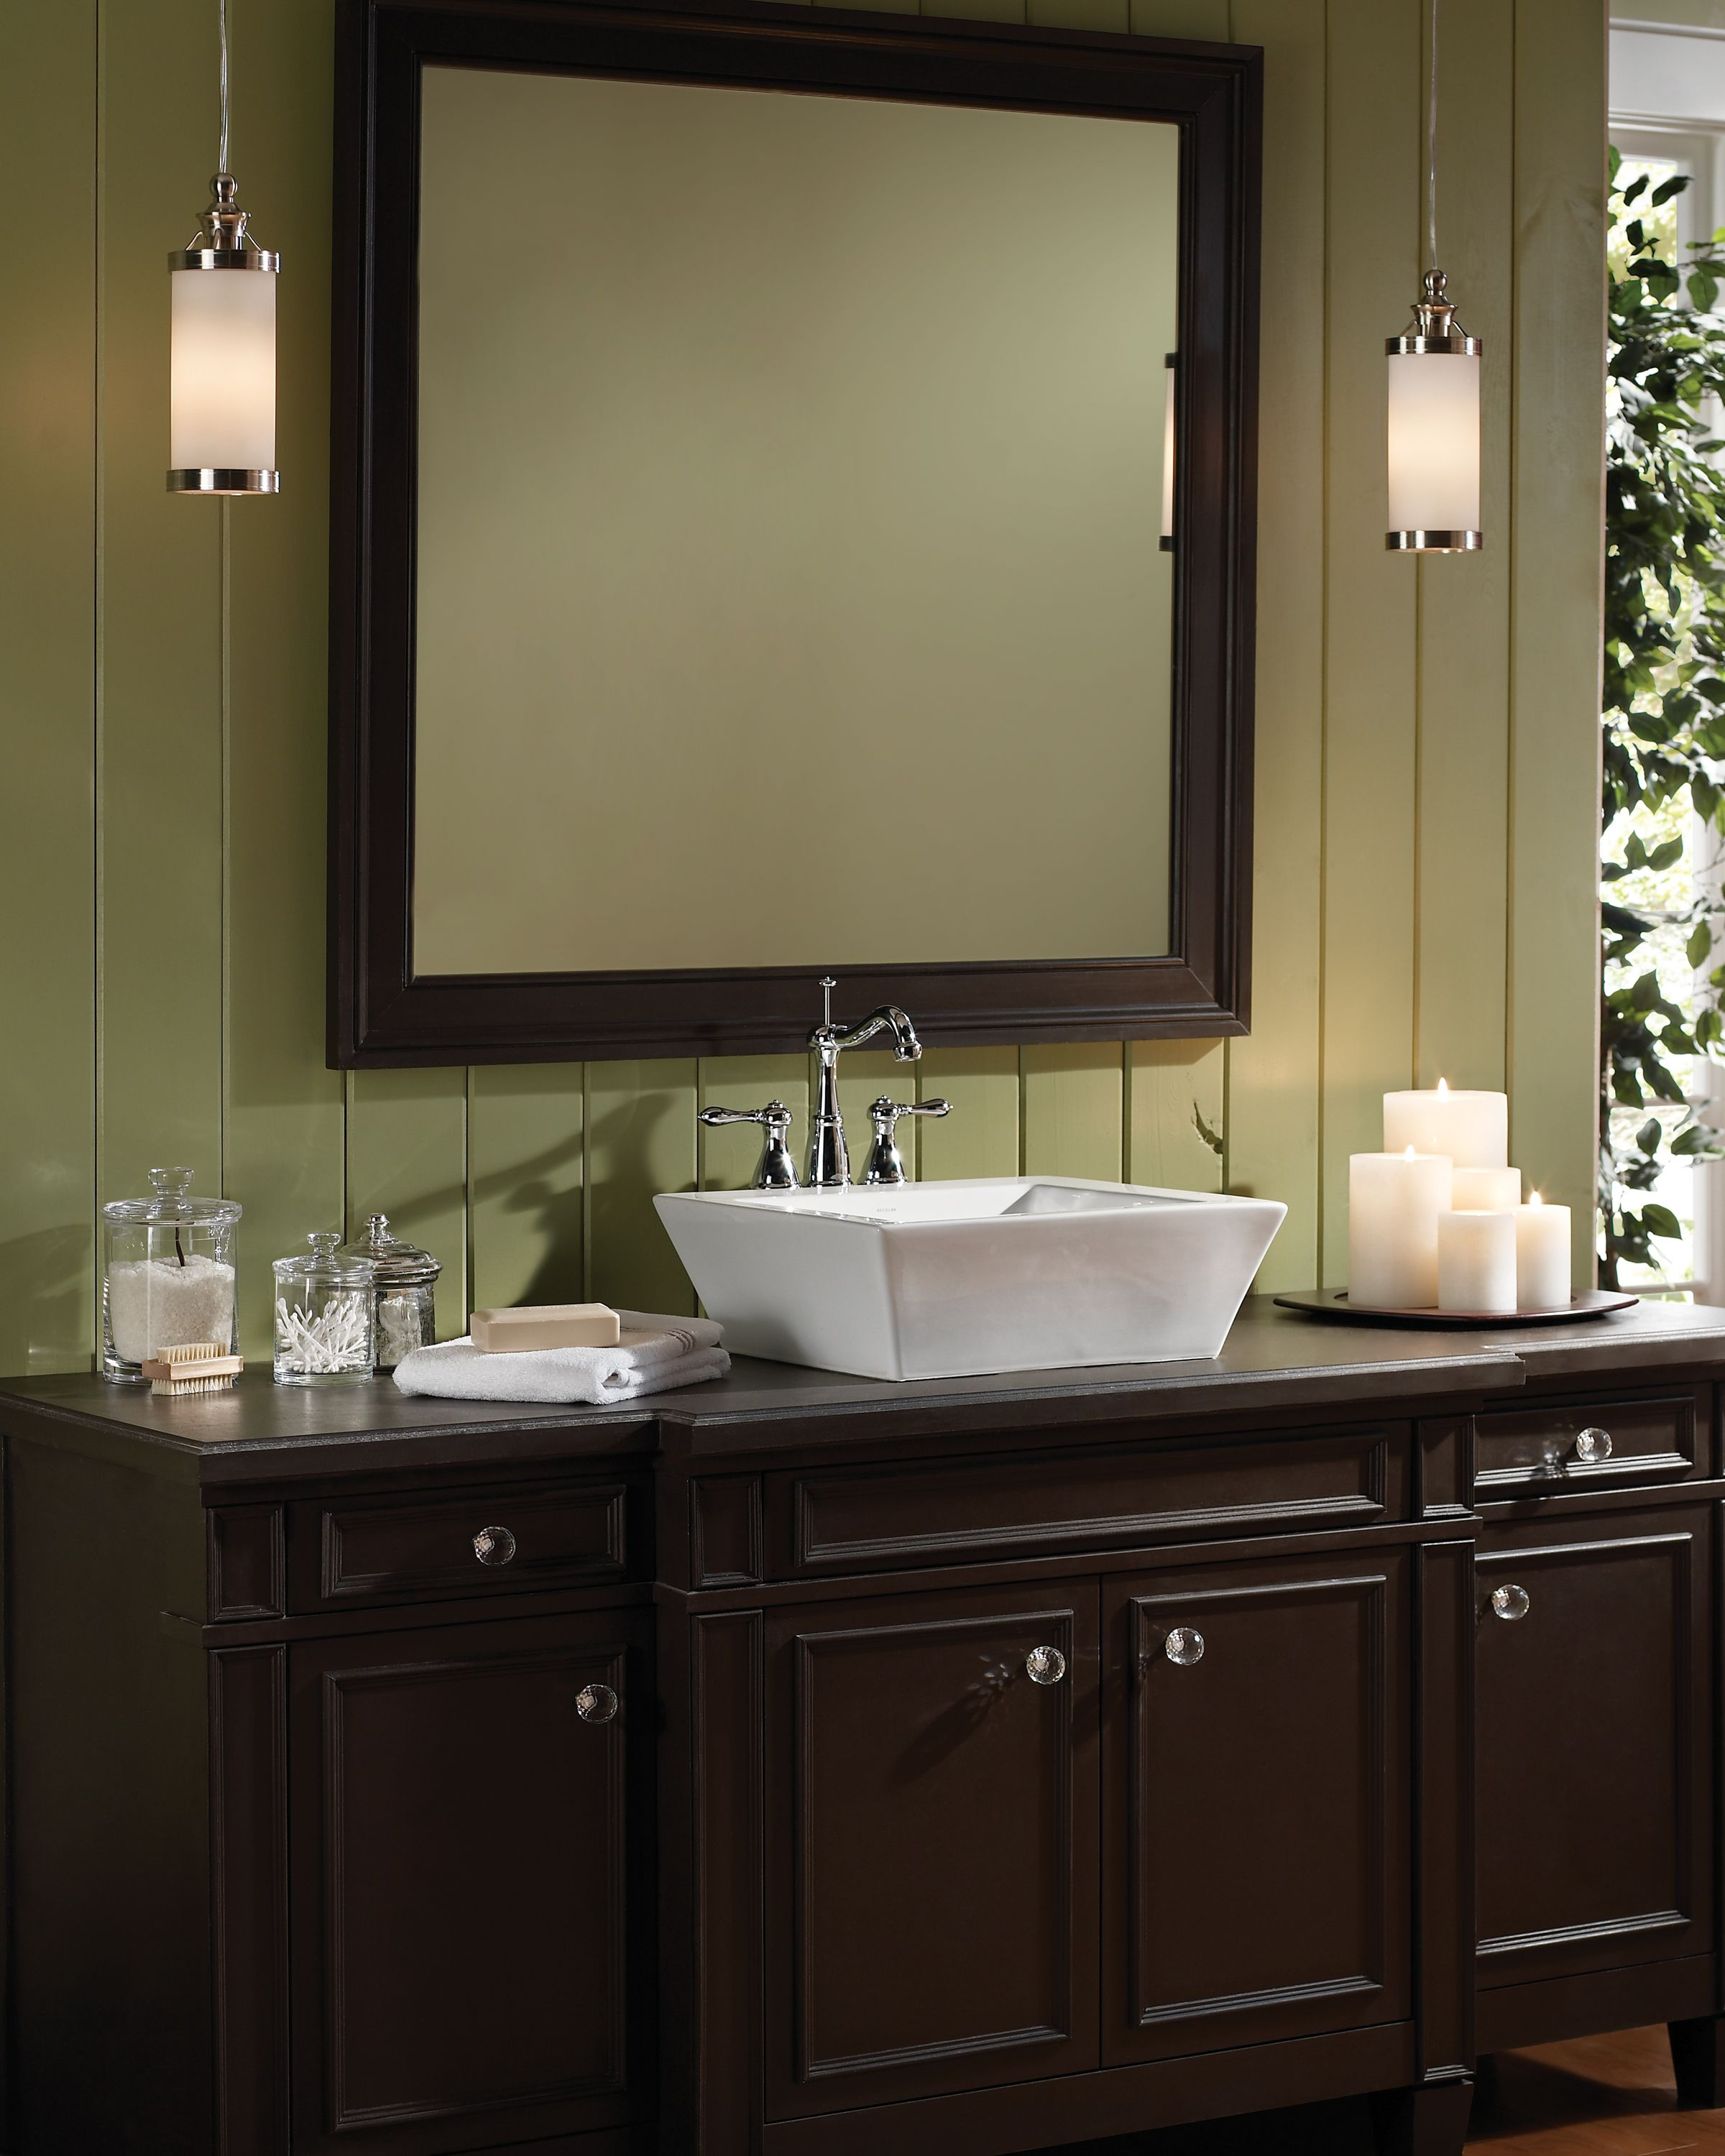 pendant lights for bathroom vanity bridgeport pendant by tech lighting in bathroom 23973